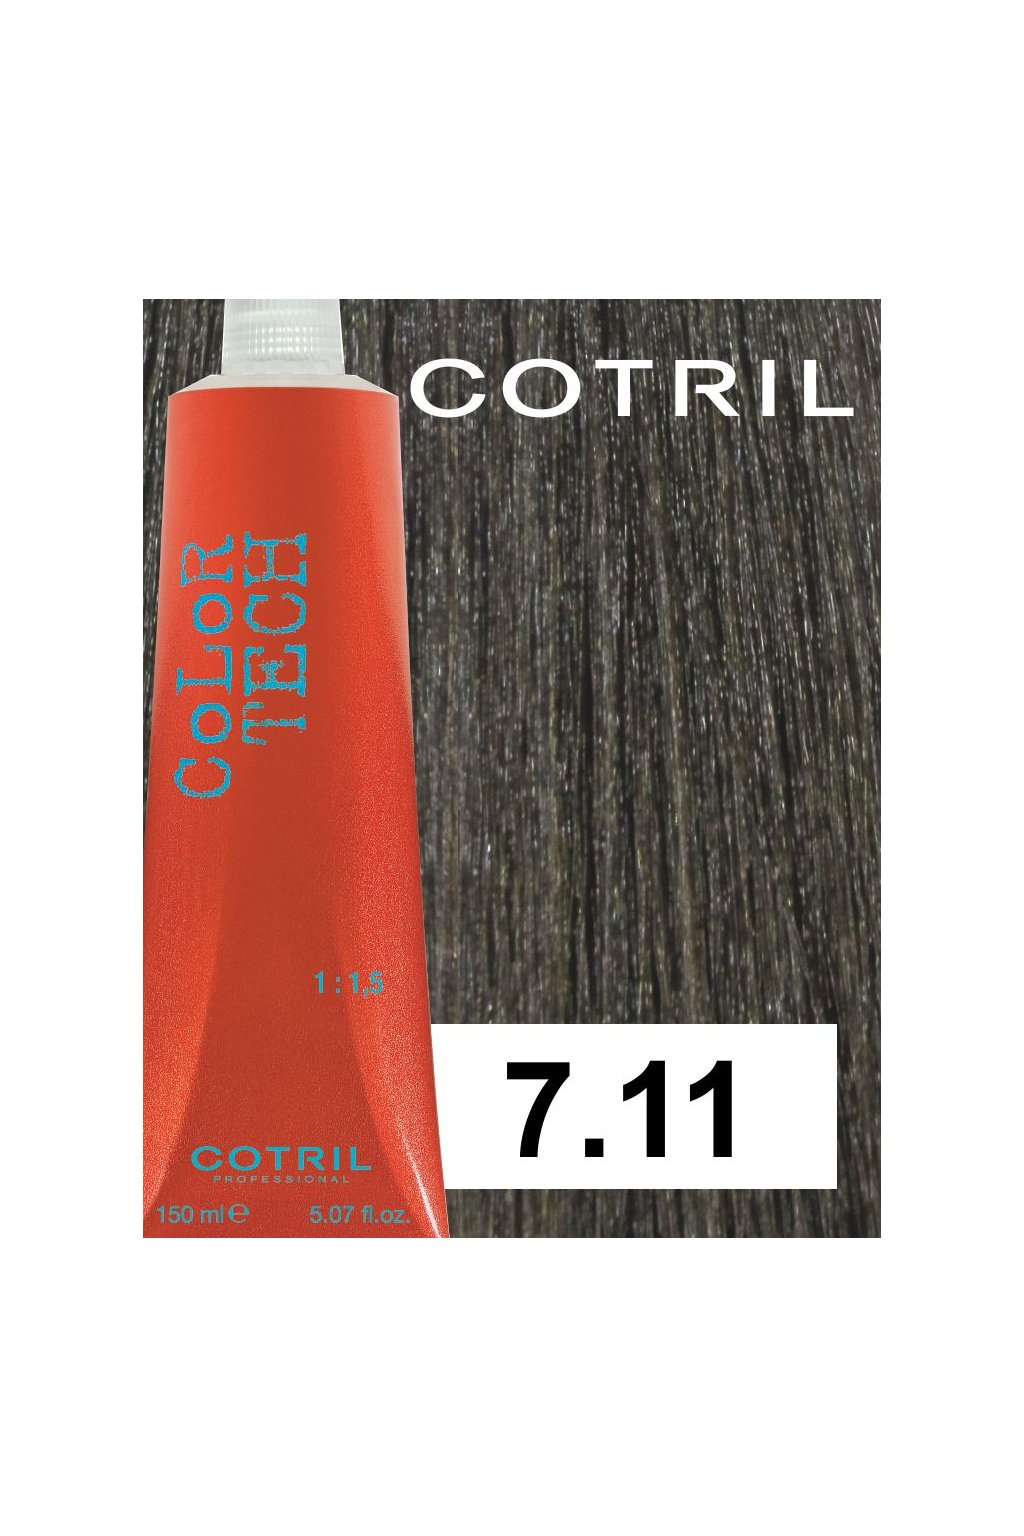 7 11 ct cotril